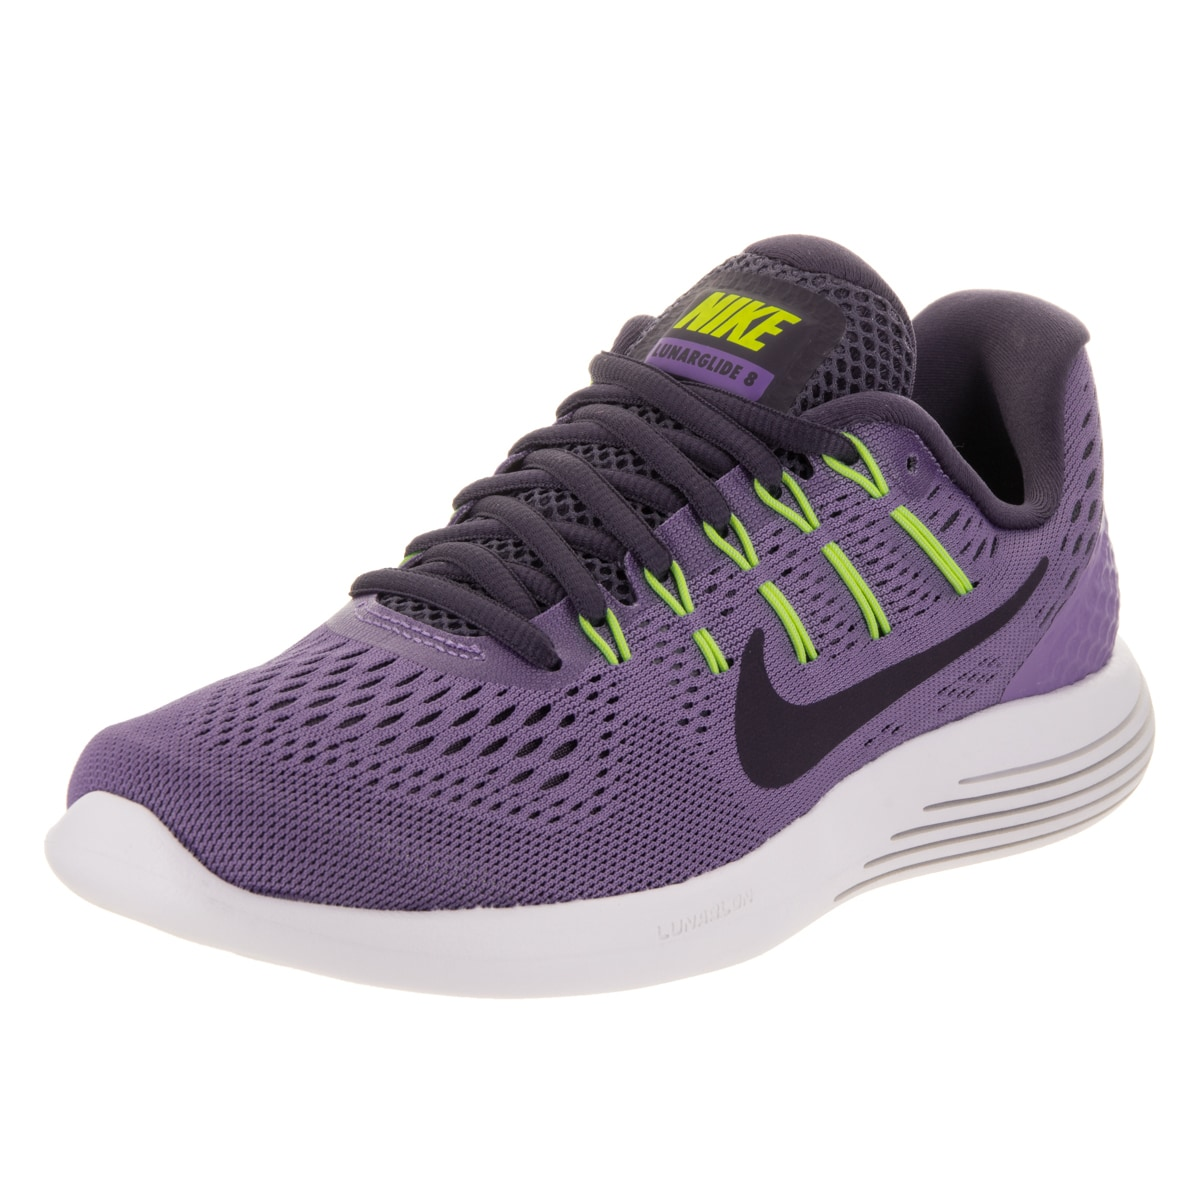 Nike Women's Lunarglide 8 Purple Textile Running Shoe (6 ...